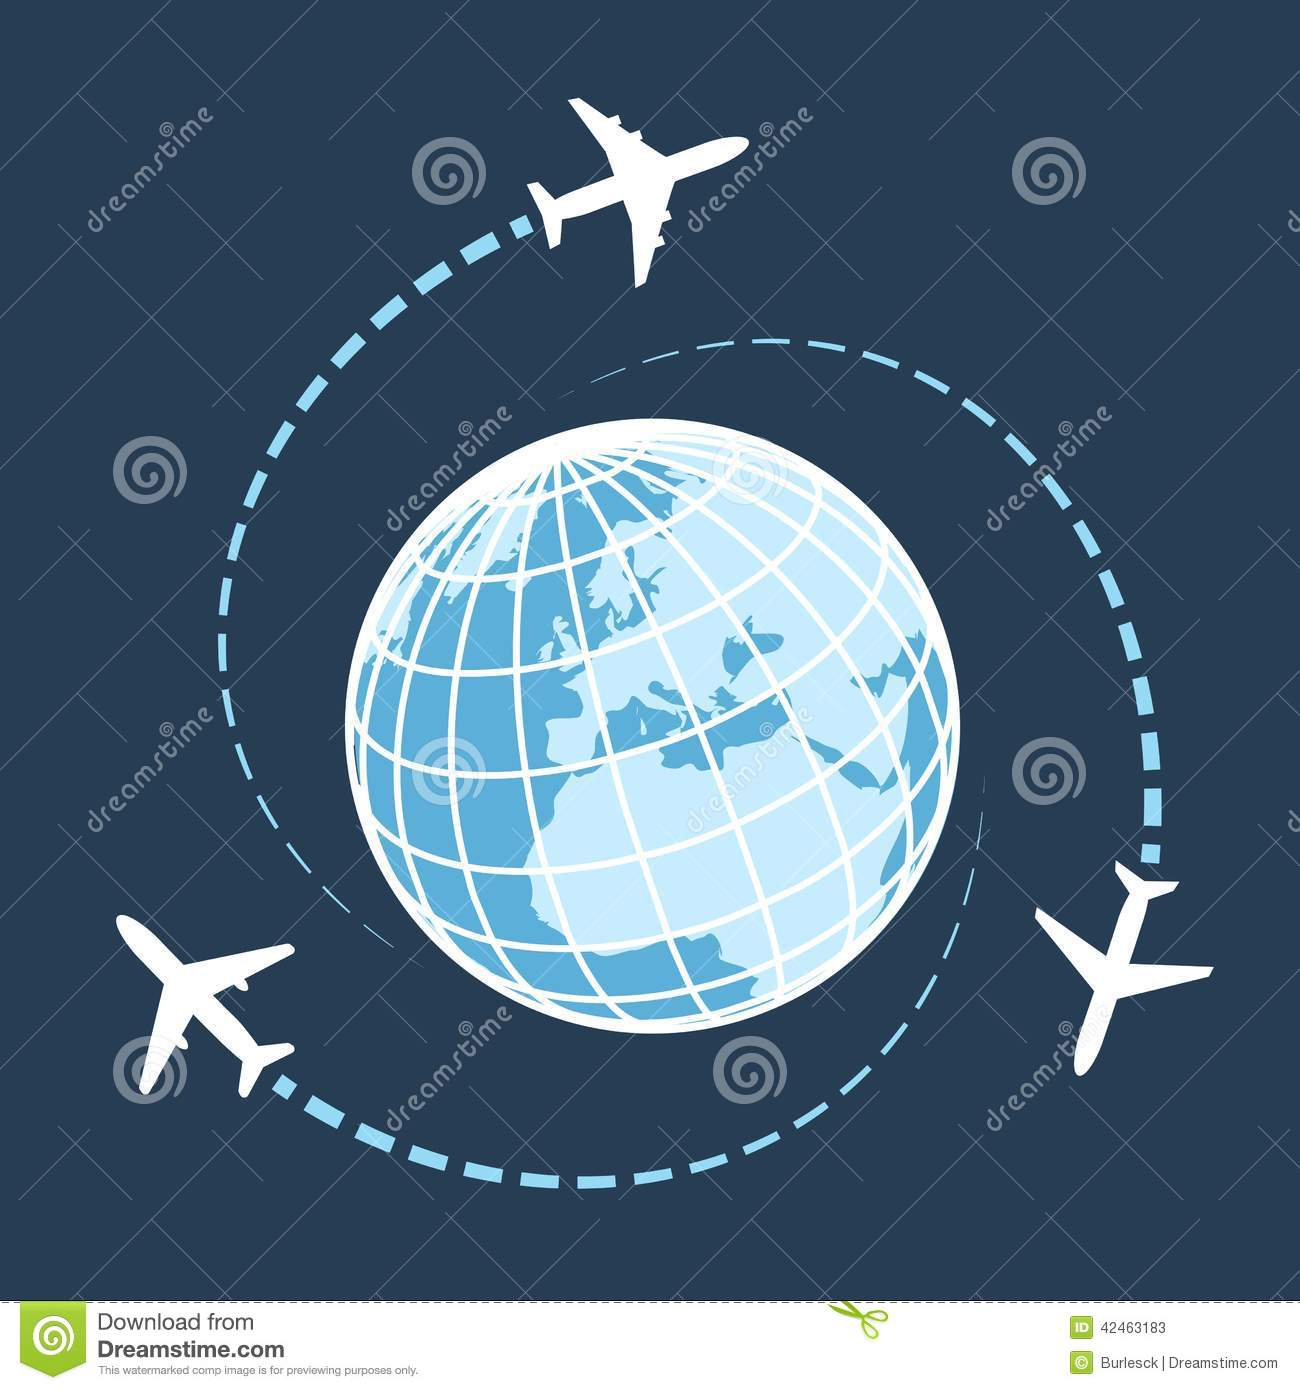 Traveling Around The World By Air Transport Stock Vector - Image ...